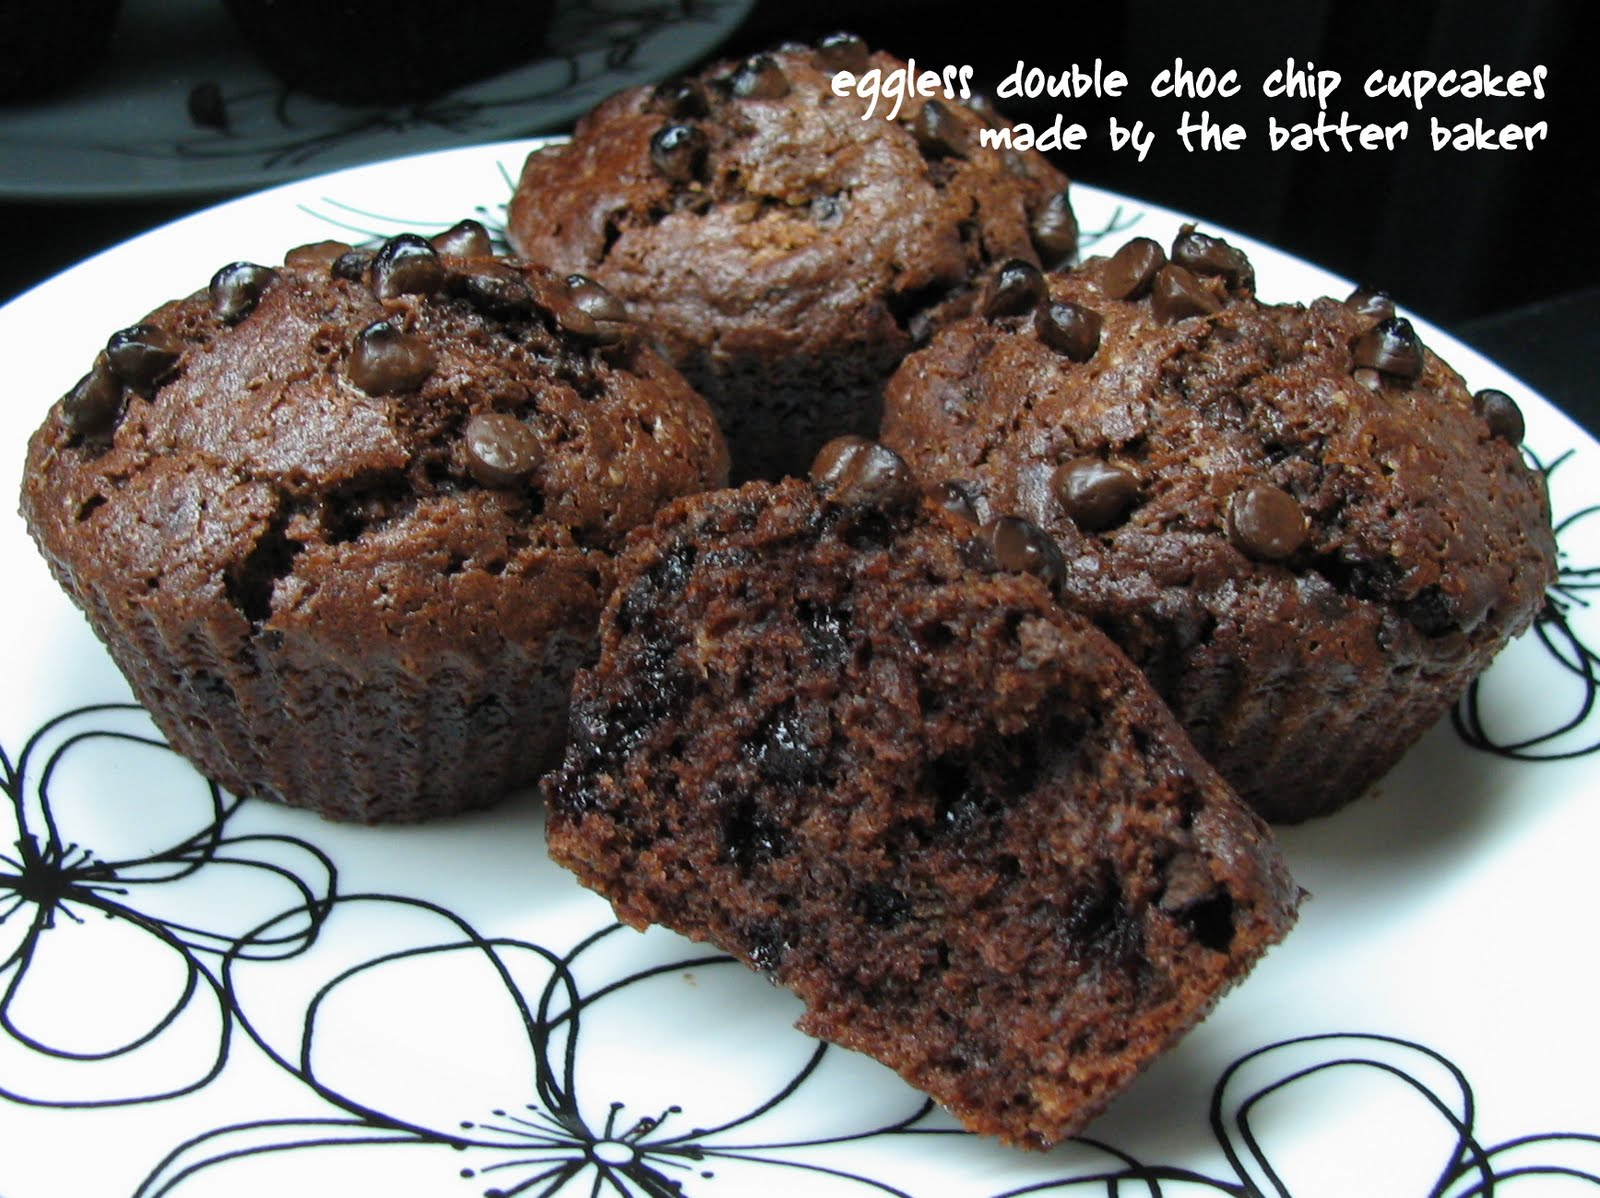 the batter baker: Eggless Double Chocolate Chip Cupcakes